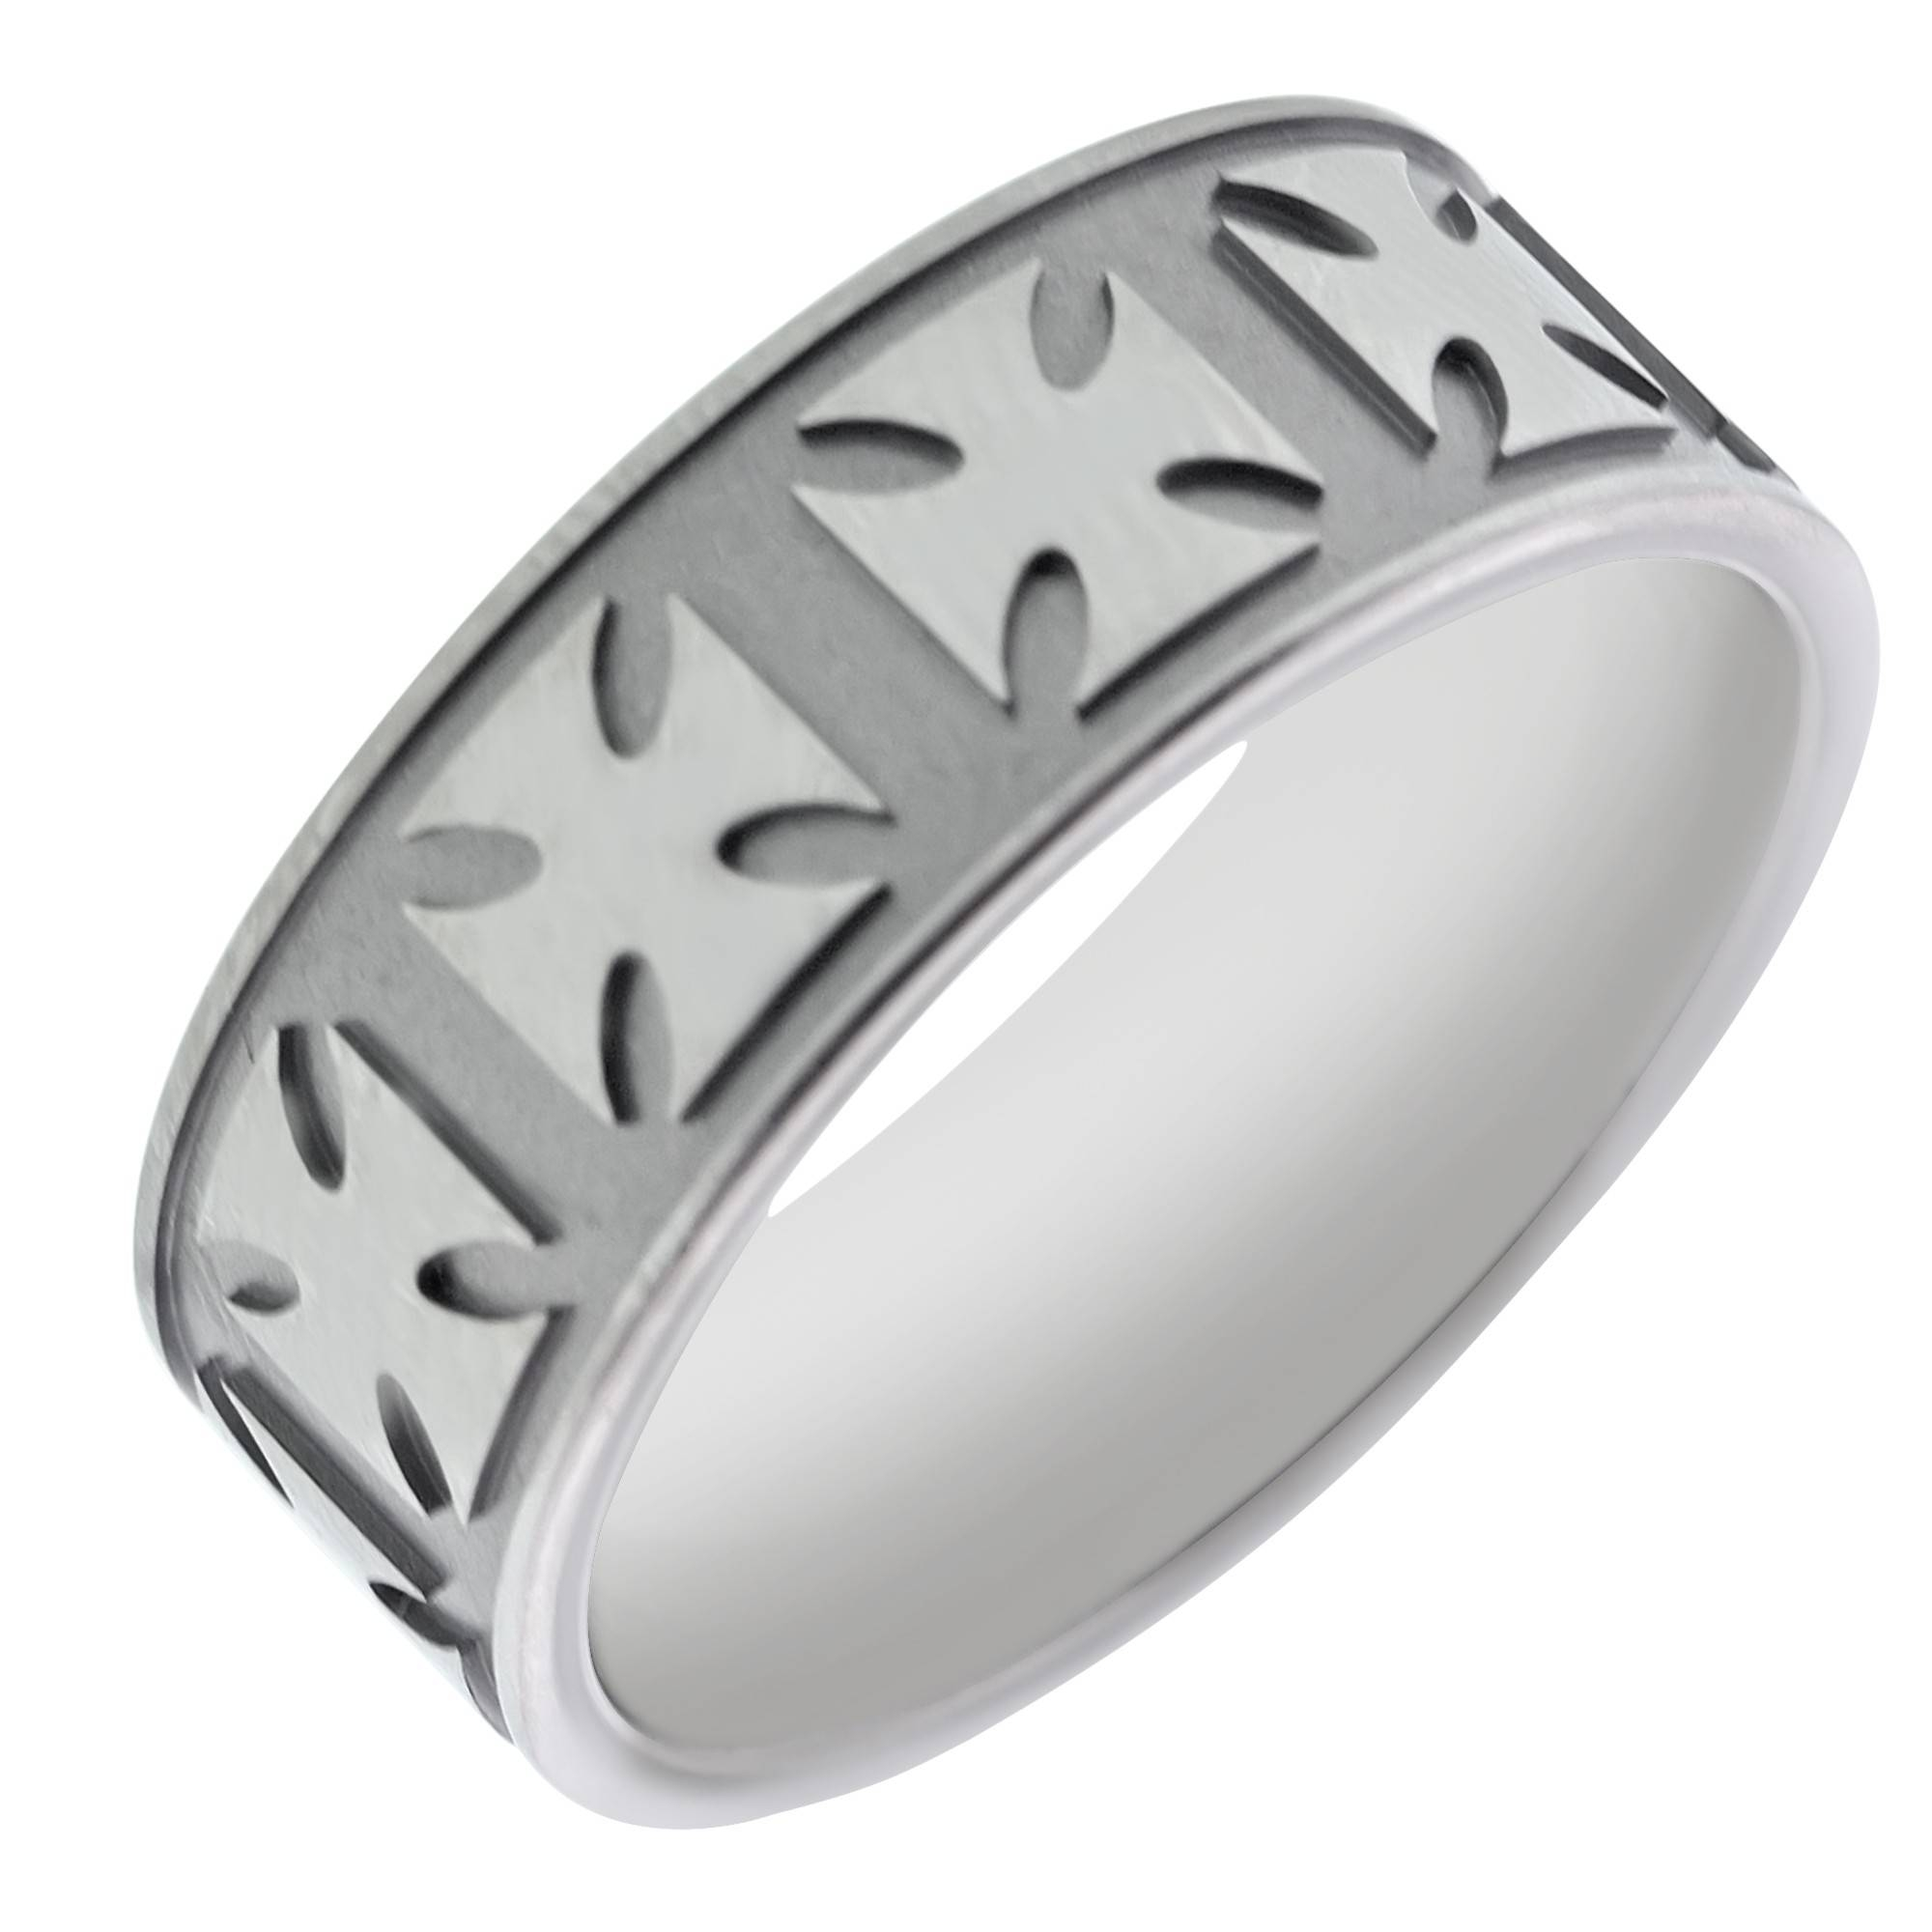 Mens Maltese Cross Wedding Band In Titanium (8Mm) With Regard To Men's Wedding Bands With Crosses (View 9 of 15)